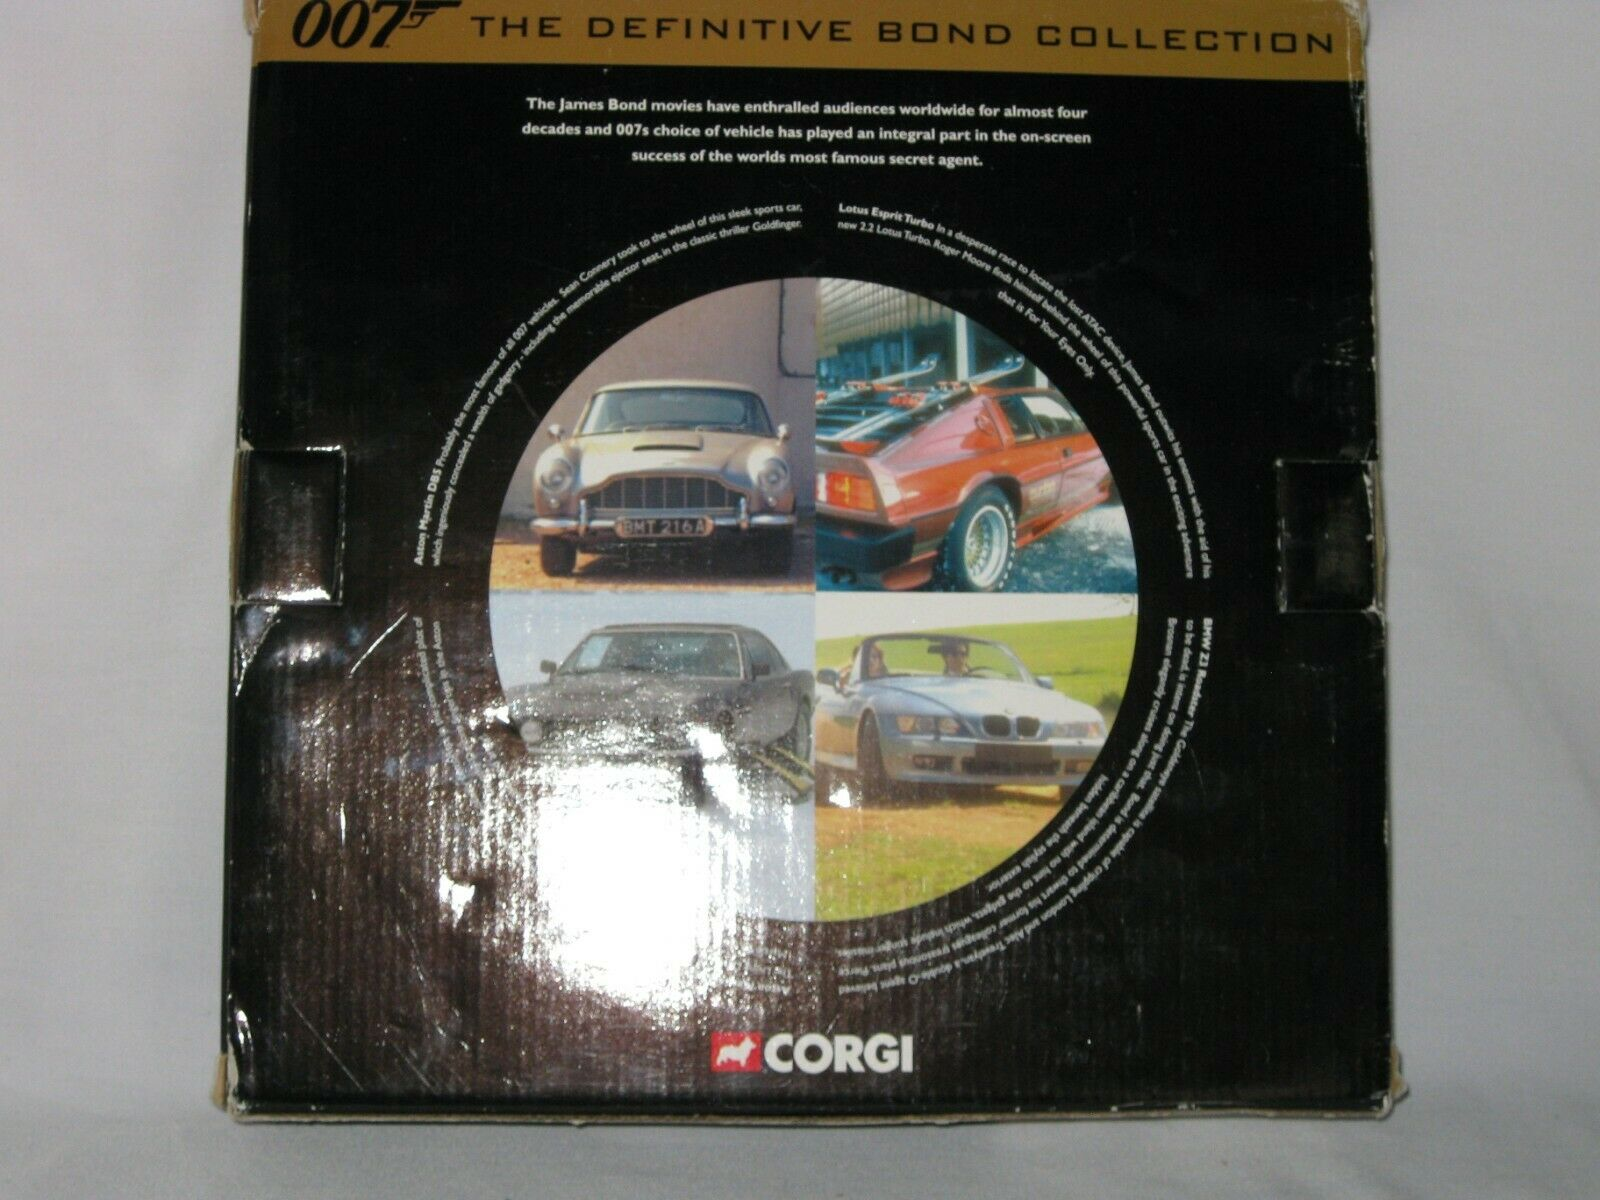 CORGI DEFINITIVE JAMES BOND 007 FILM CANISTER 4 PIECE SET CC99106 - EXCELLENT